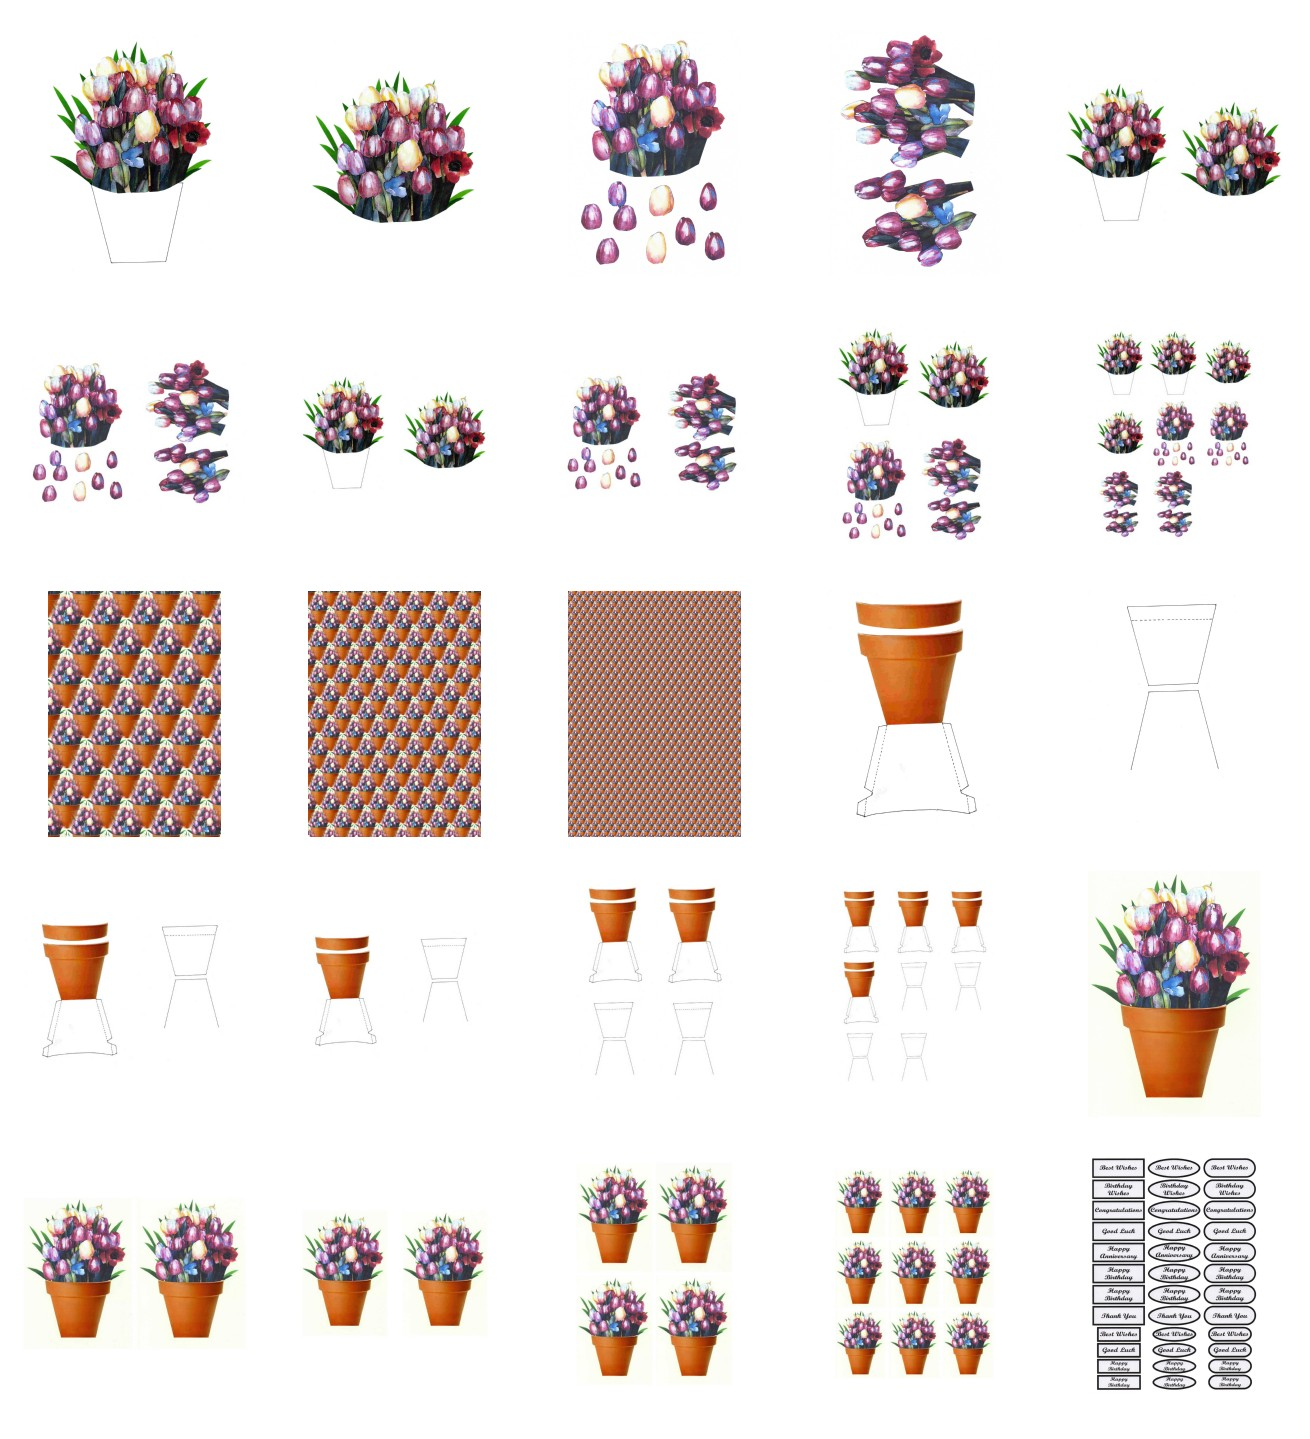 Spring Tulip Flowers Set 02 - 25 Pages to Download